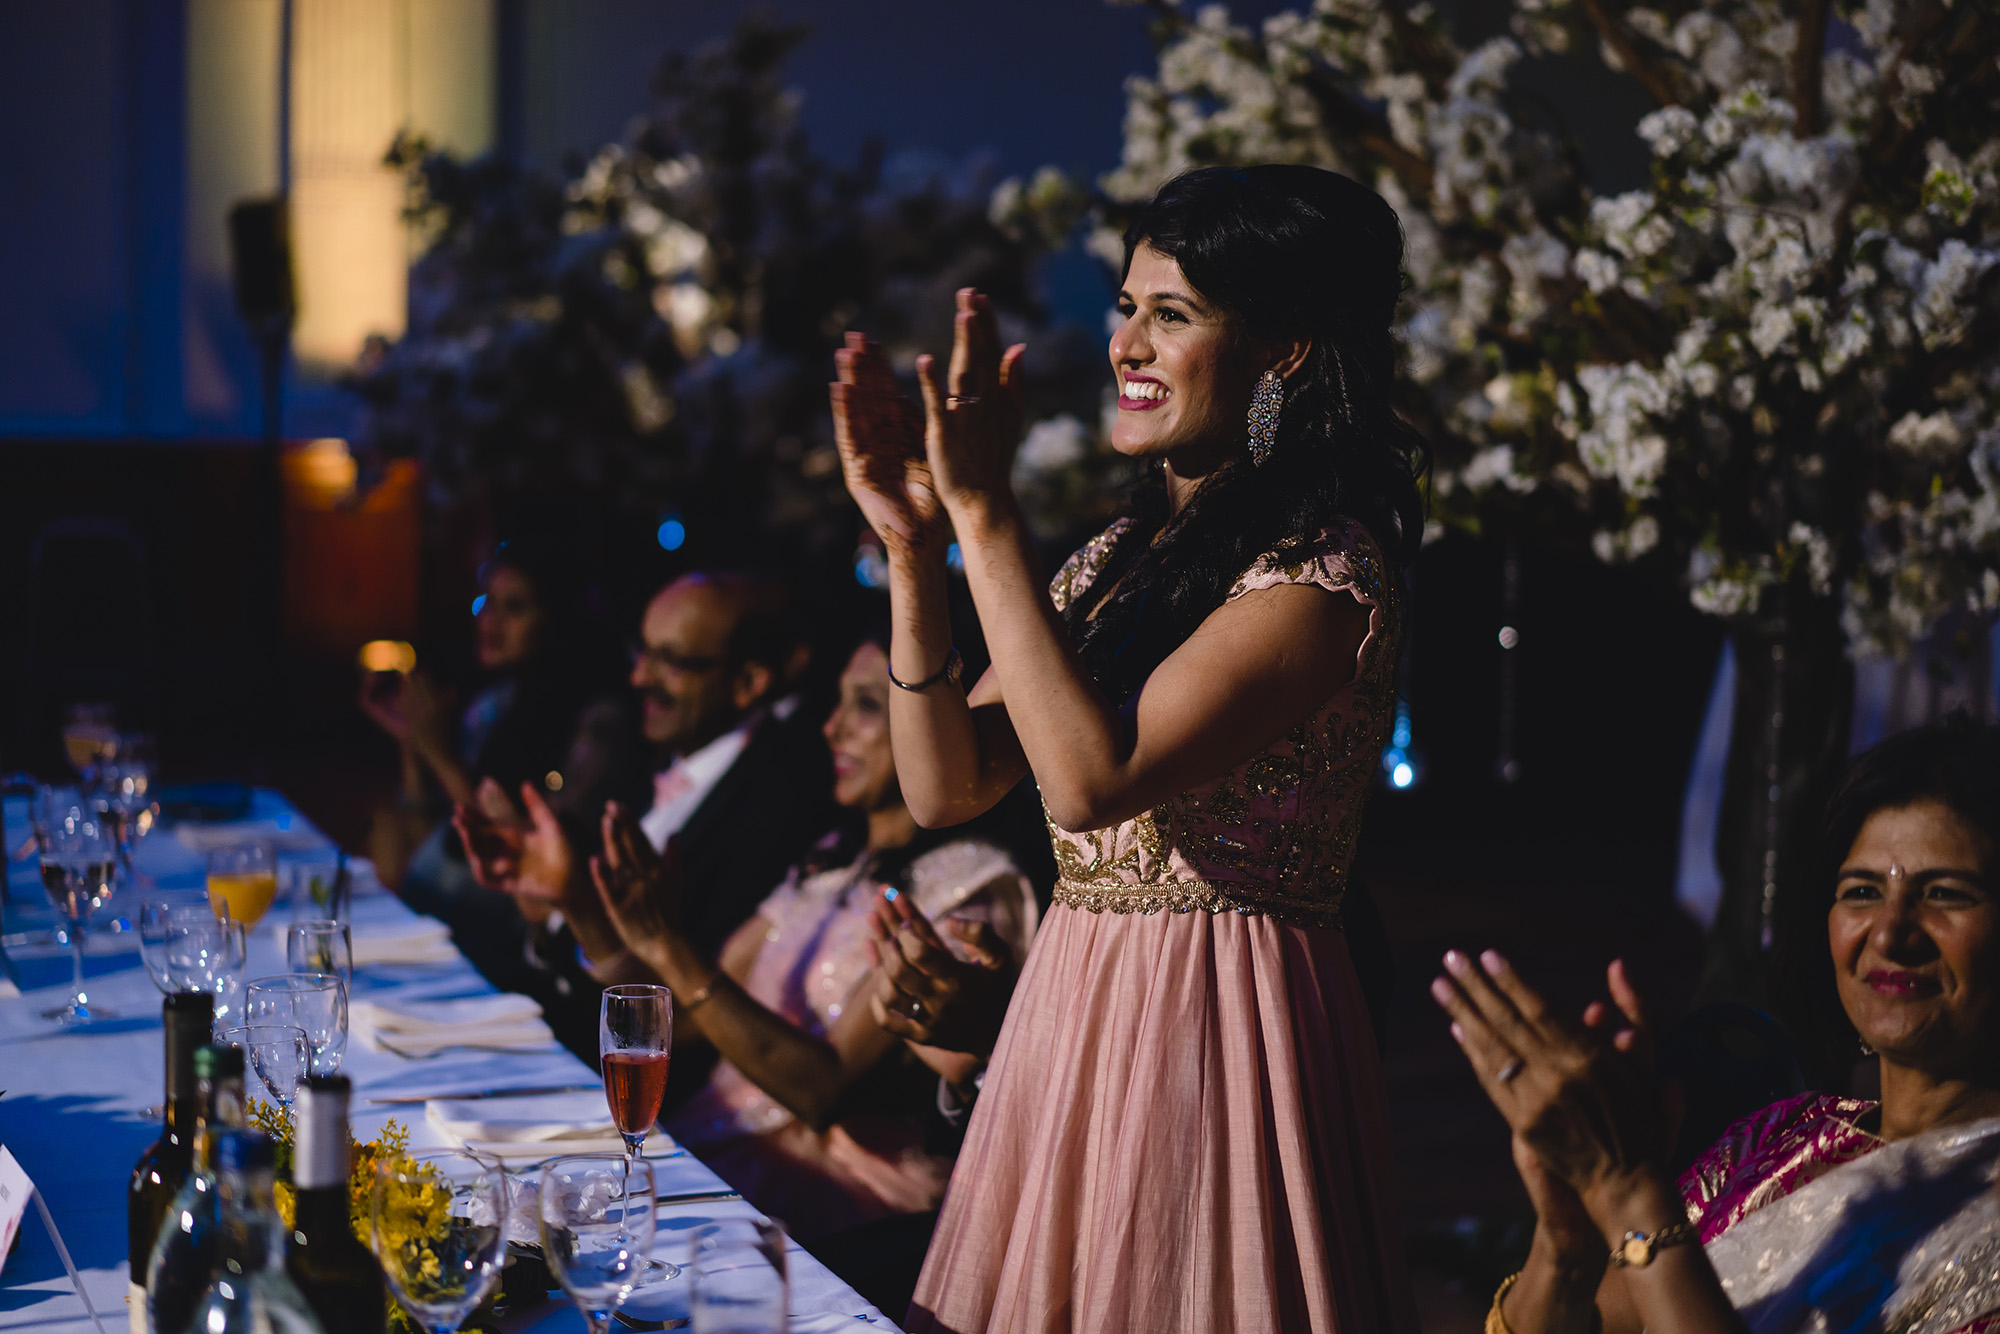 bride clapping speeches at her reception